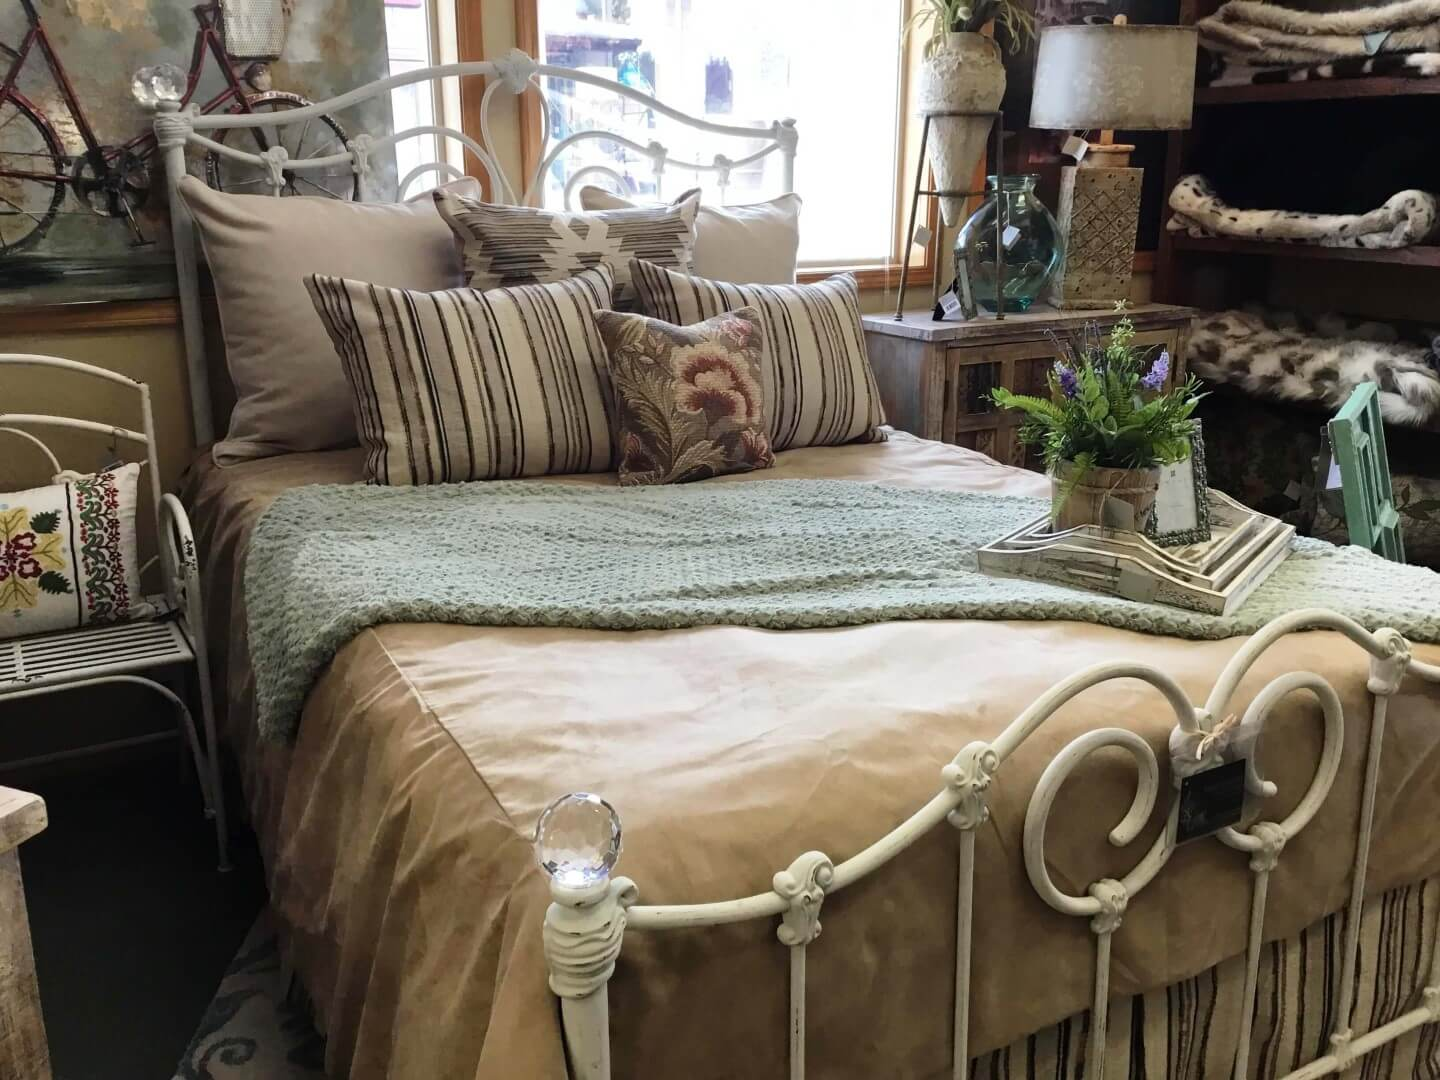 WELCOME VILLAGE INTERIORS DESIGN CENTER AND HOME FURNISHINGS IN - Designer home furnishings